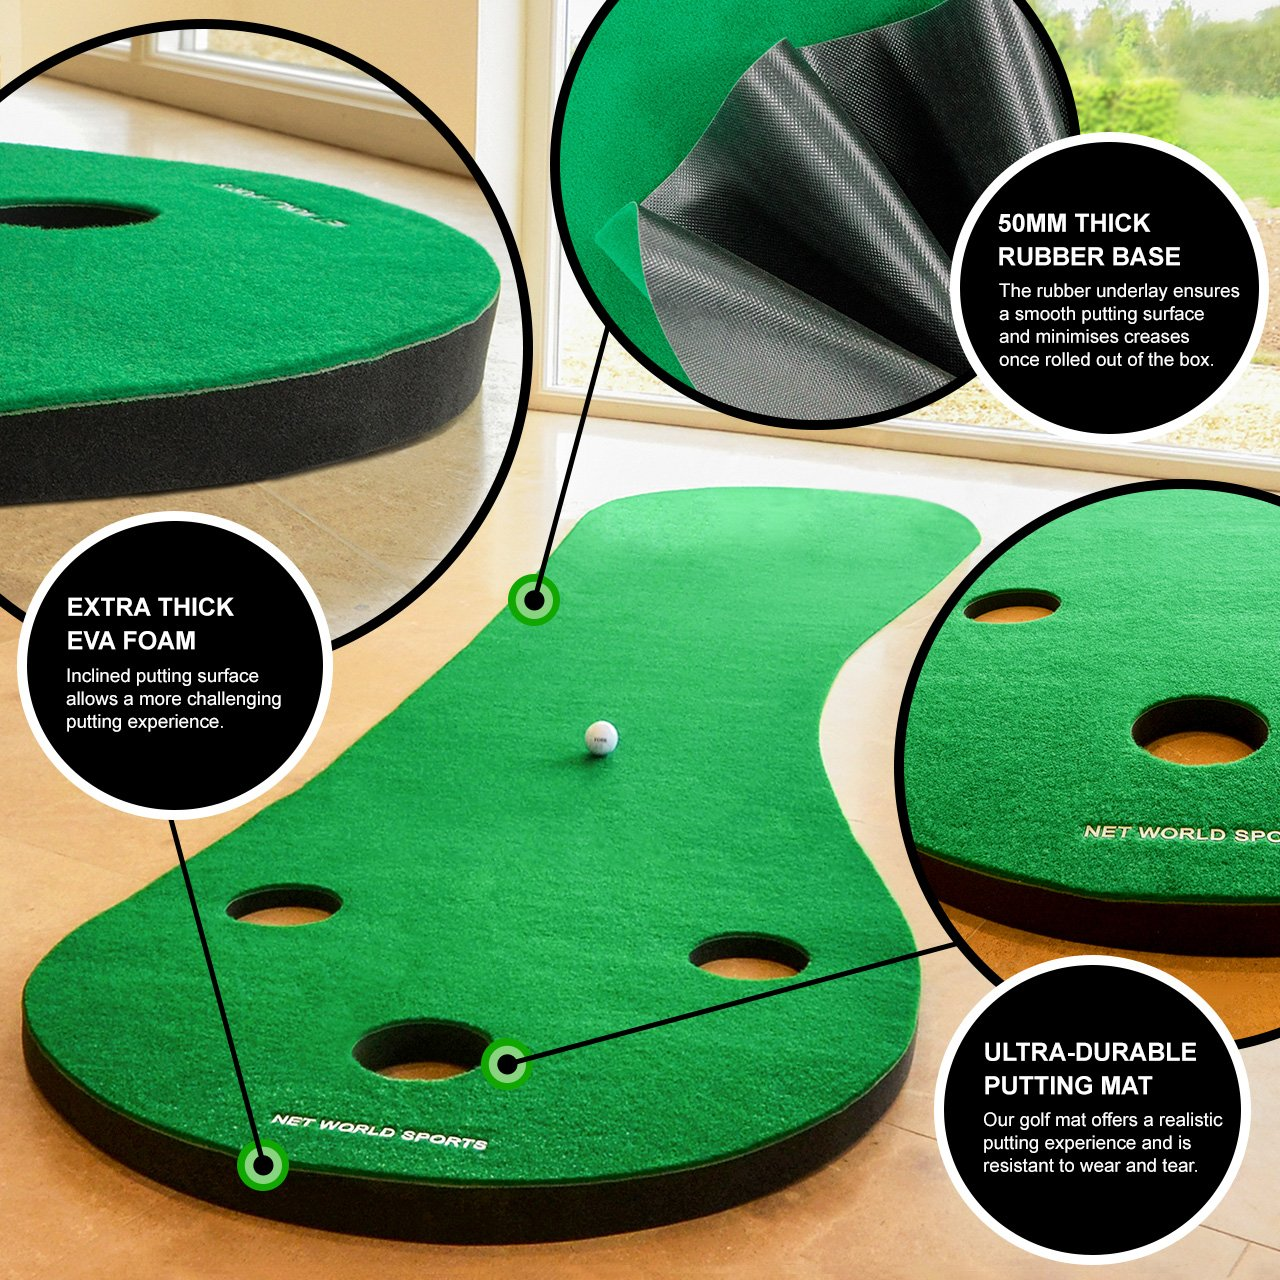 FORB Home Golf Putting Mat 10ft Long - Conquer The Green In Your Own Home! [Net World Sports] by FORB (Image #5)